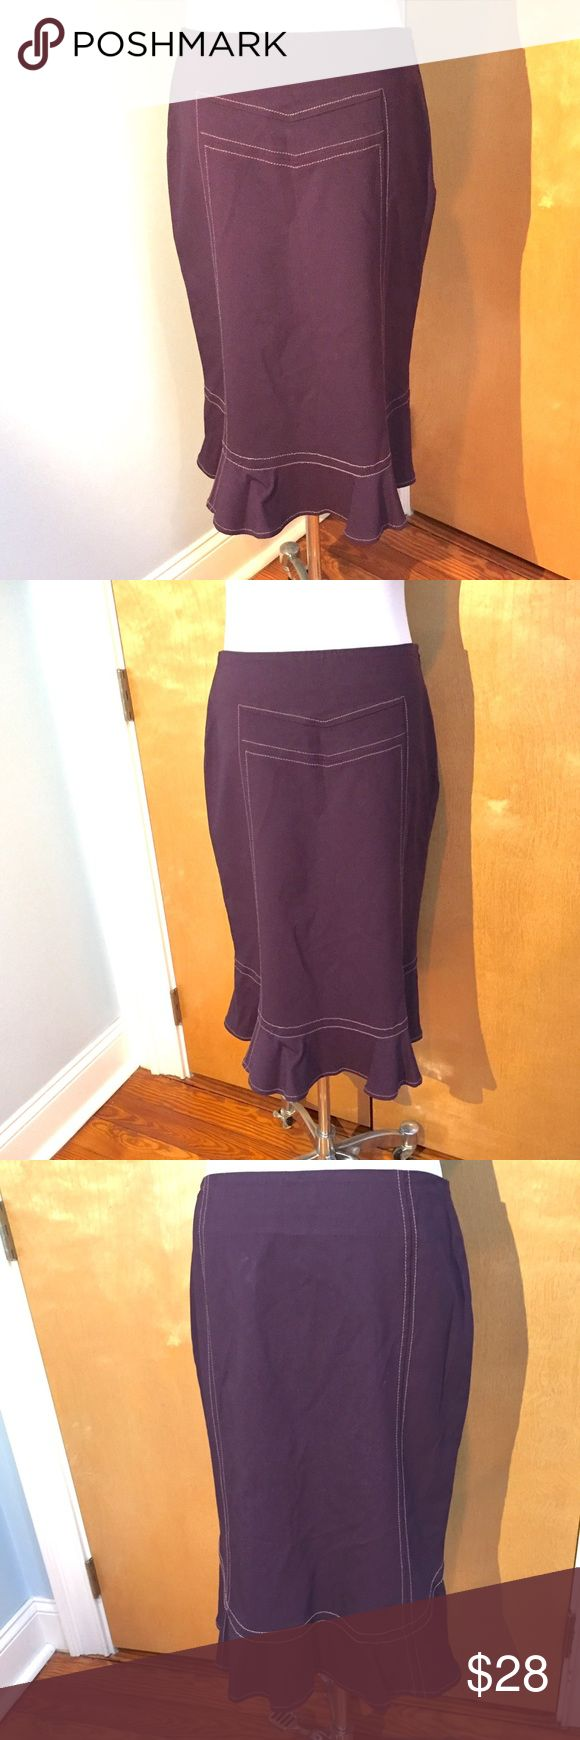 "🆕Anthropologie Elevenses Trumpet Flounced Skirt Anthro flounces trumpet skirt in a lovely purple/eggplant color. Lovely panel stitching (thread is a light plum/pink? See pics). Slip underneath is trimmed with lace. Excellent used condition. Back zip. 76% rayon 21% nylon 3 % spandex lining 100% acetate. Approx measures lying flat waist 15"", length 25."" Dry clean. Smoke free/pet friendly home. DC Anthropologie Skirts"